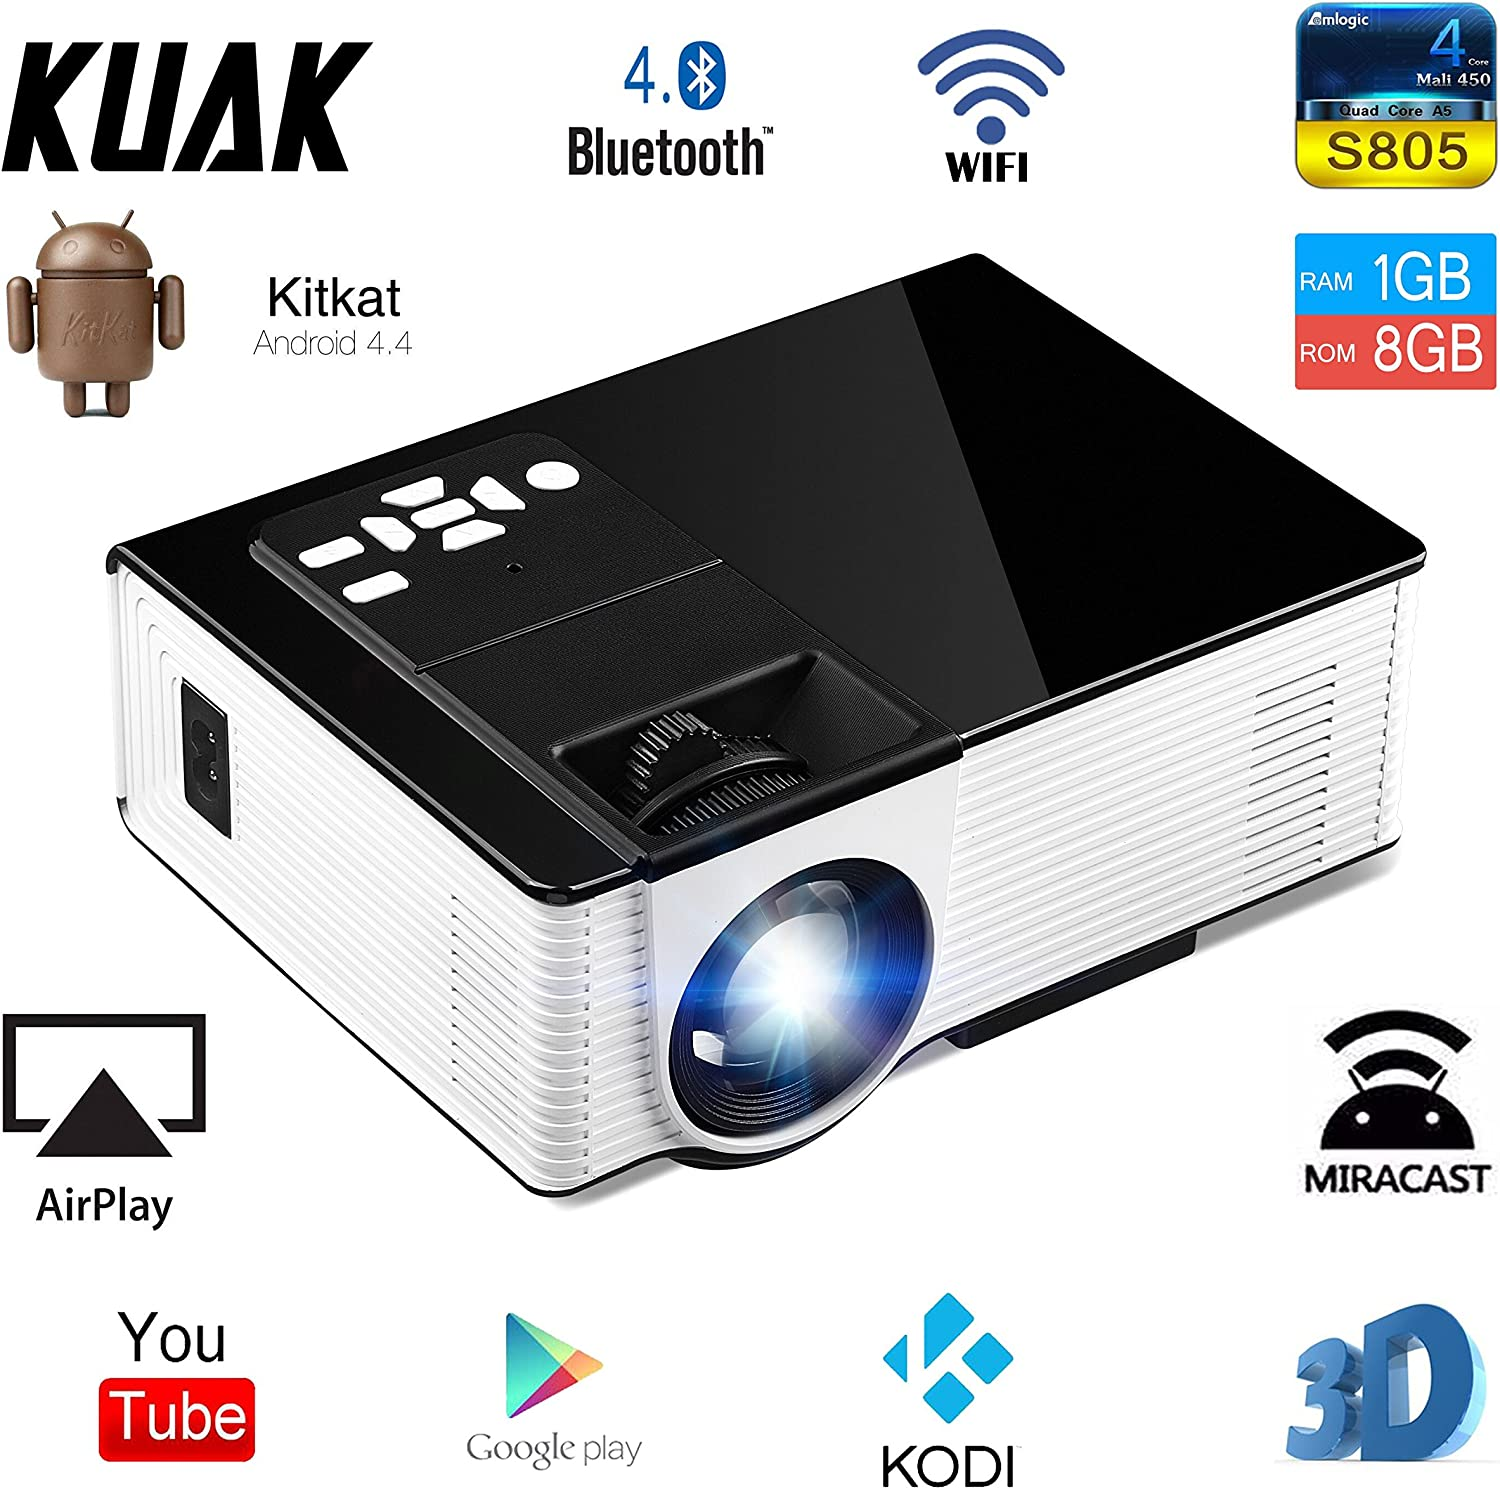 kuak Android LED LCD mini proyector de vídeo portátil Wifi ...